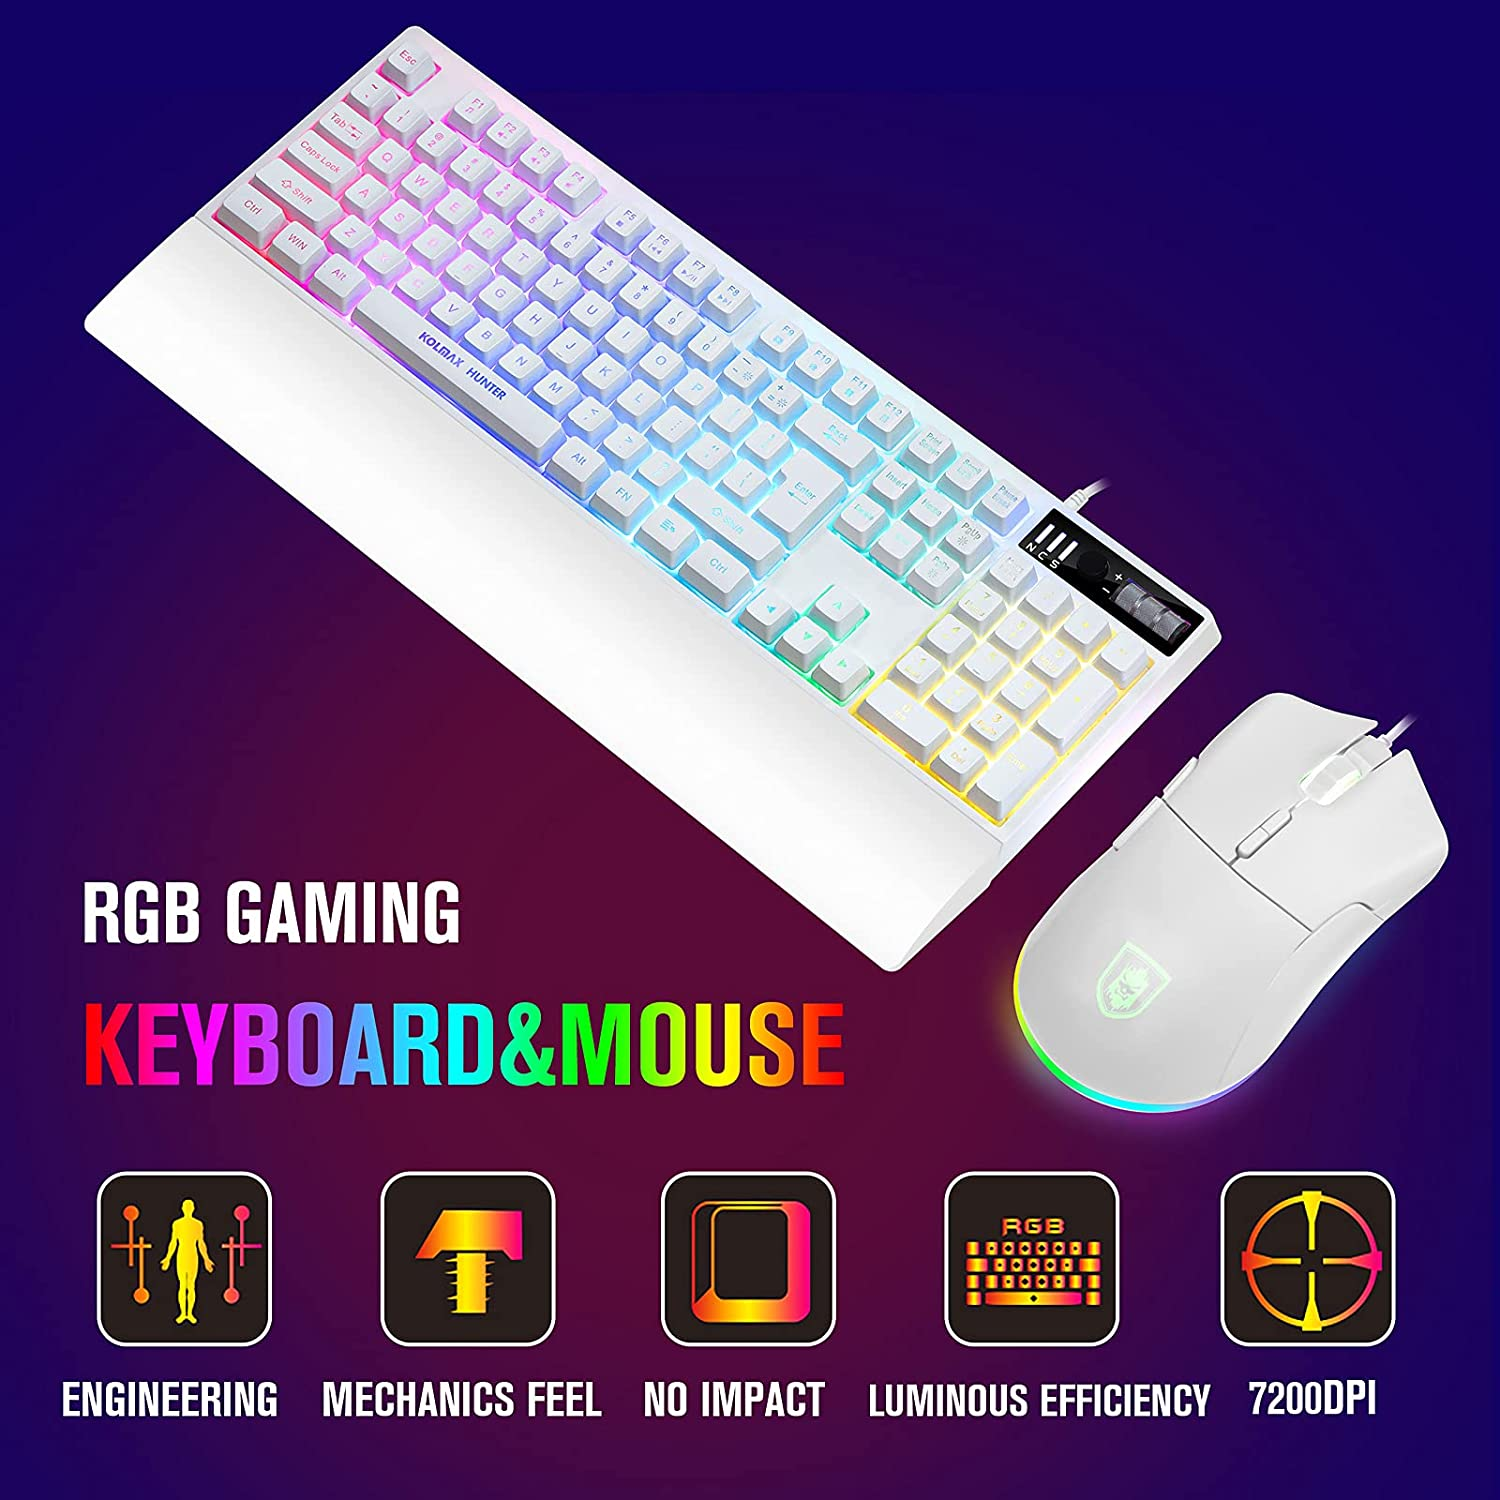 White RGB Gaming Keyboard and Mouse Combo,RGB Mechanical Feel Gaming Keyboard with Ergonomic Detachable Wrist Rest, Programmable 7200 DPI 7 Button RGB Gaming Mouse for Windows PC Mac Office/Gaming